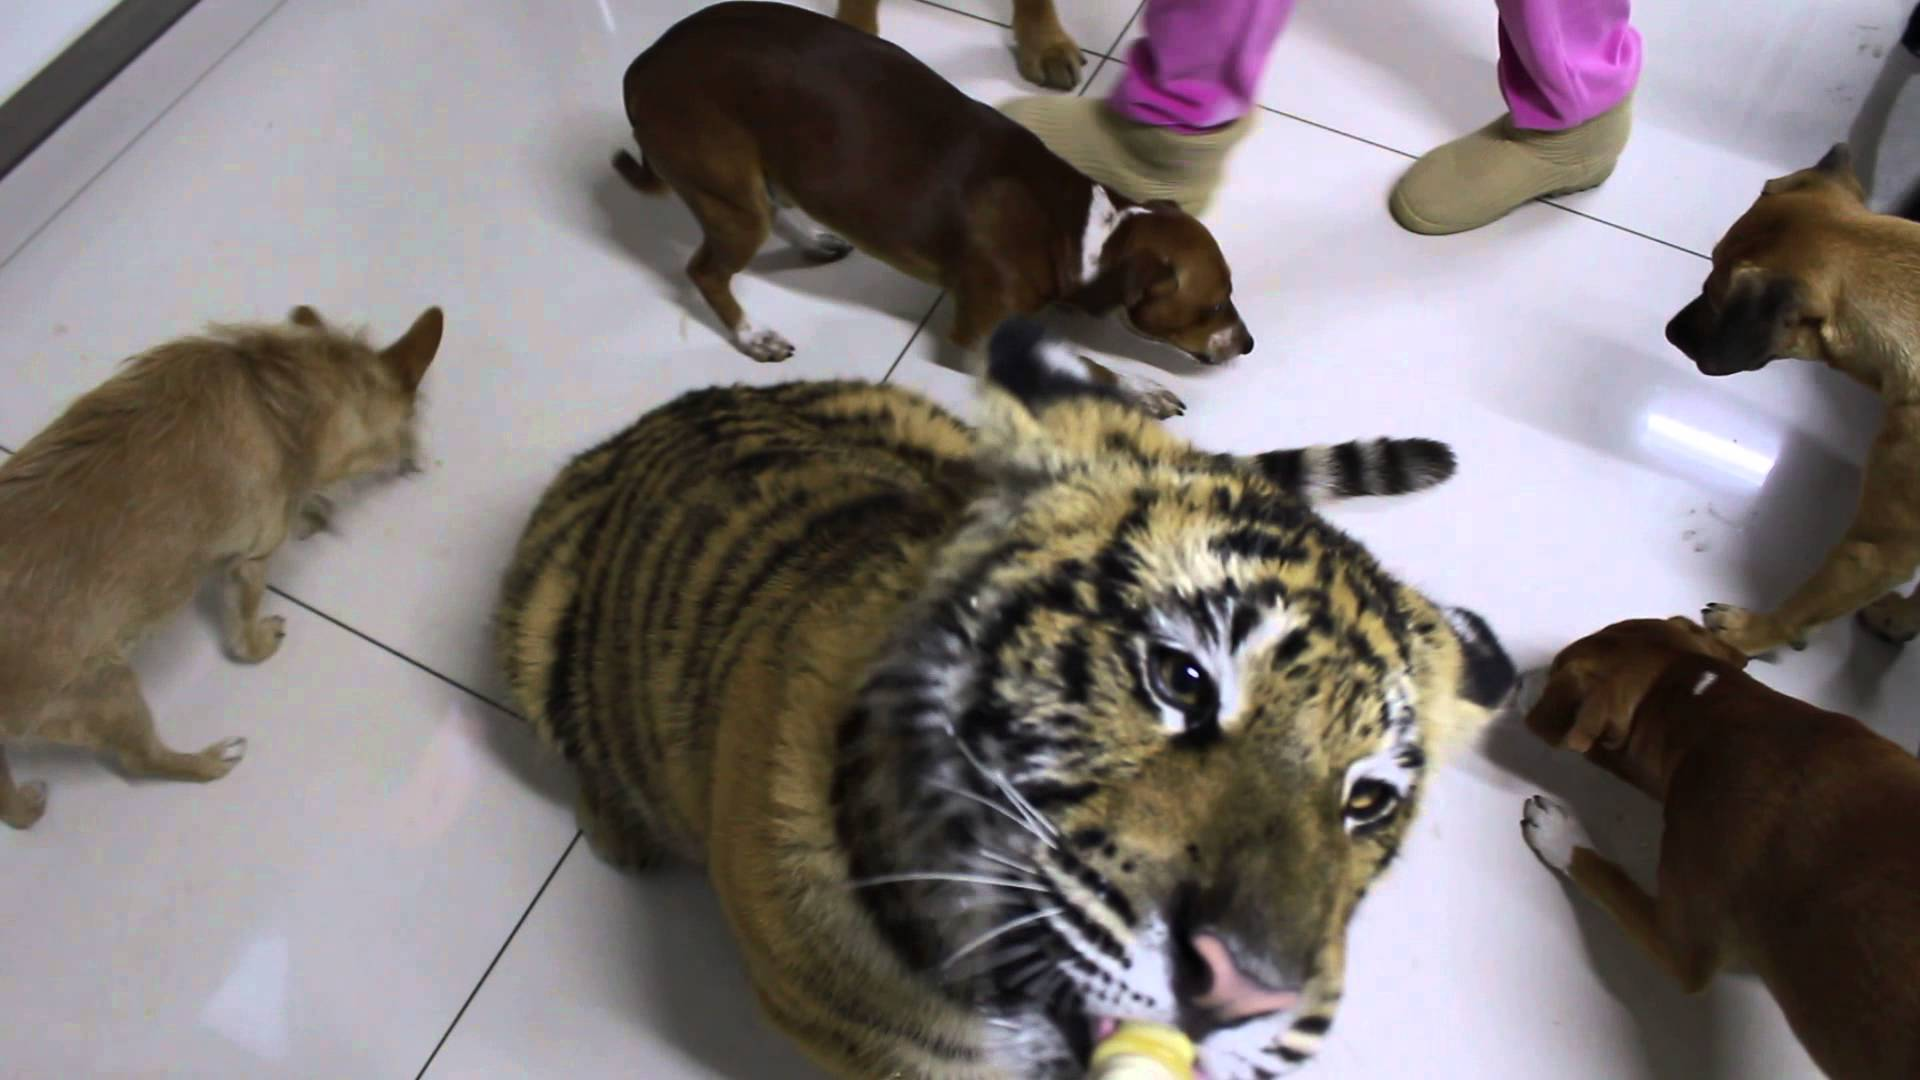 Dogs and a tiger eating cookies and drinking milk